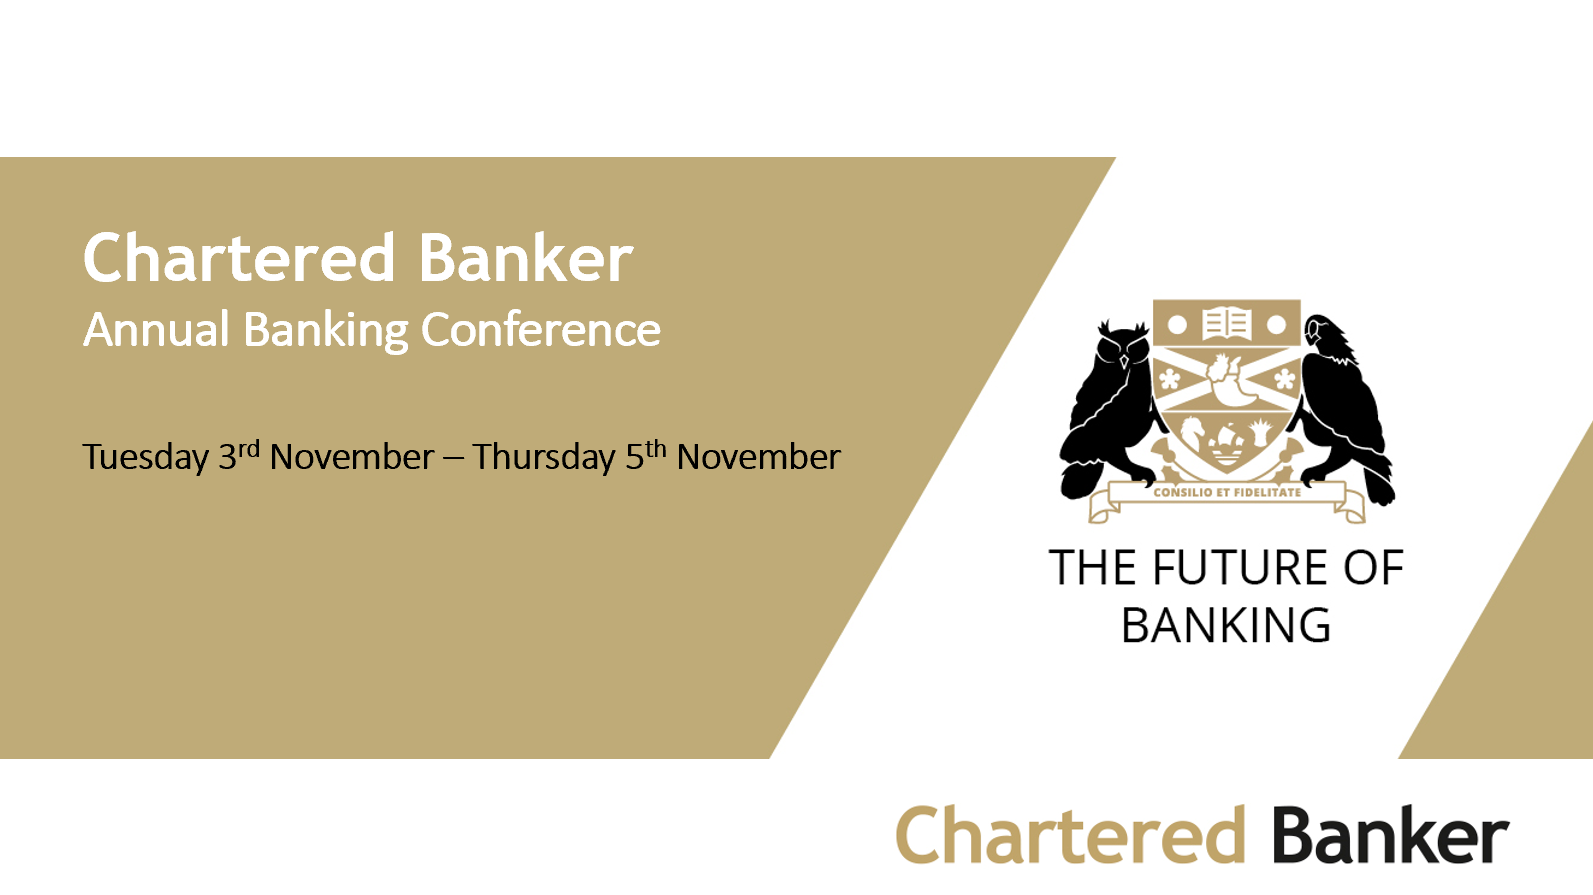 Chartered Banker Institute Annual Banking Conference 2020 - Technology v the People Debate